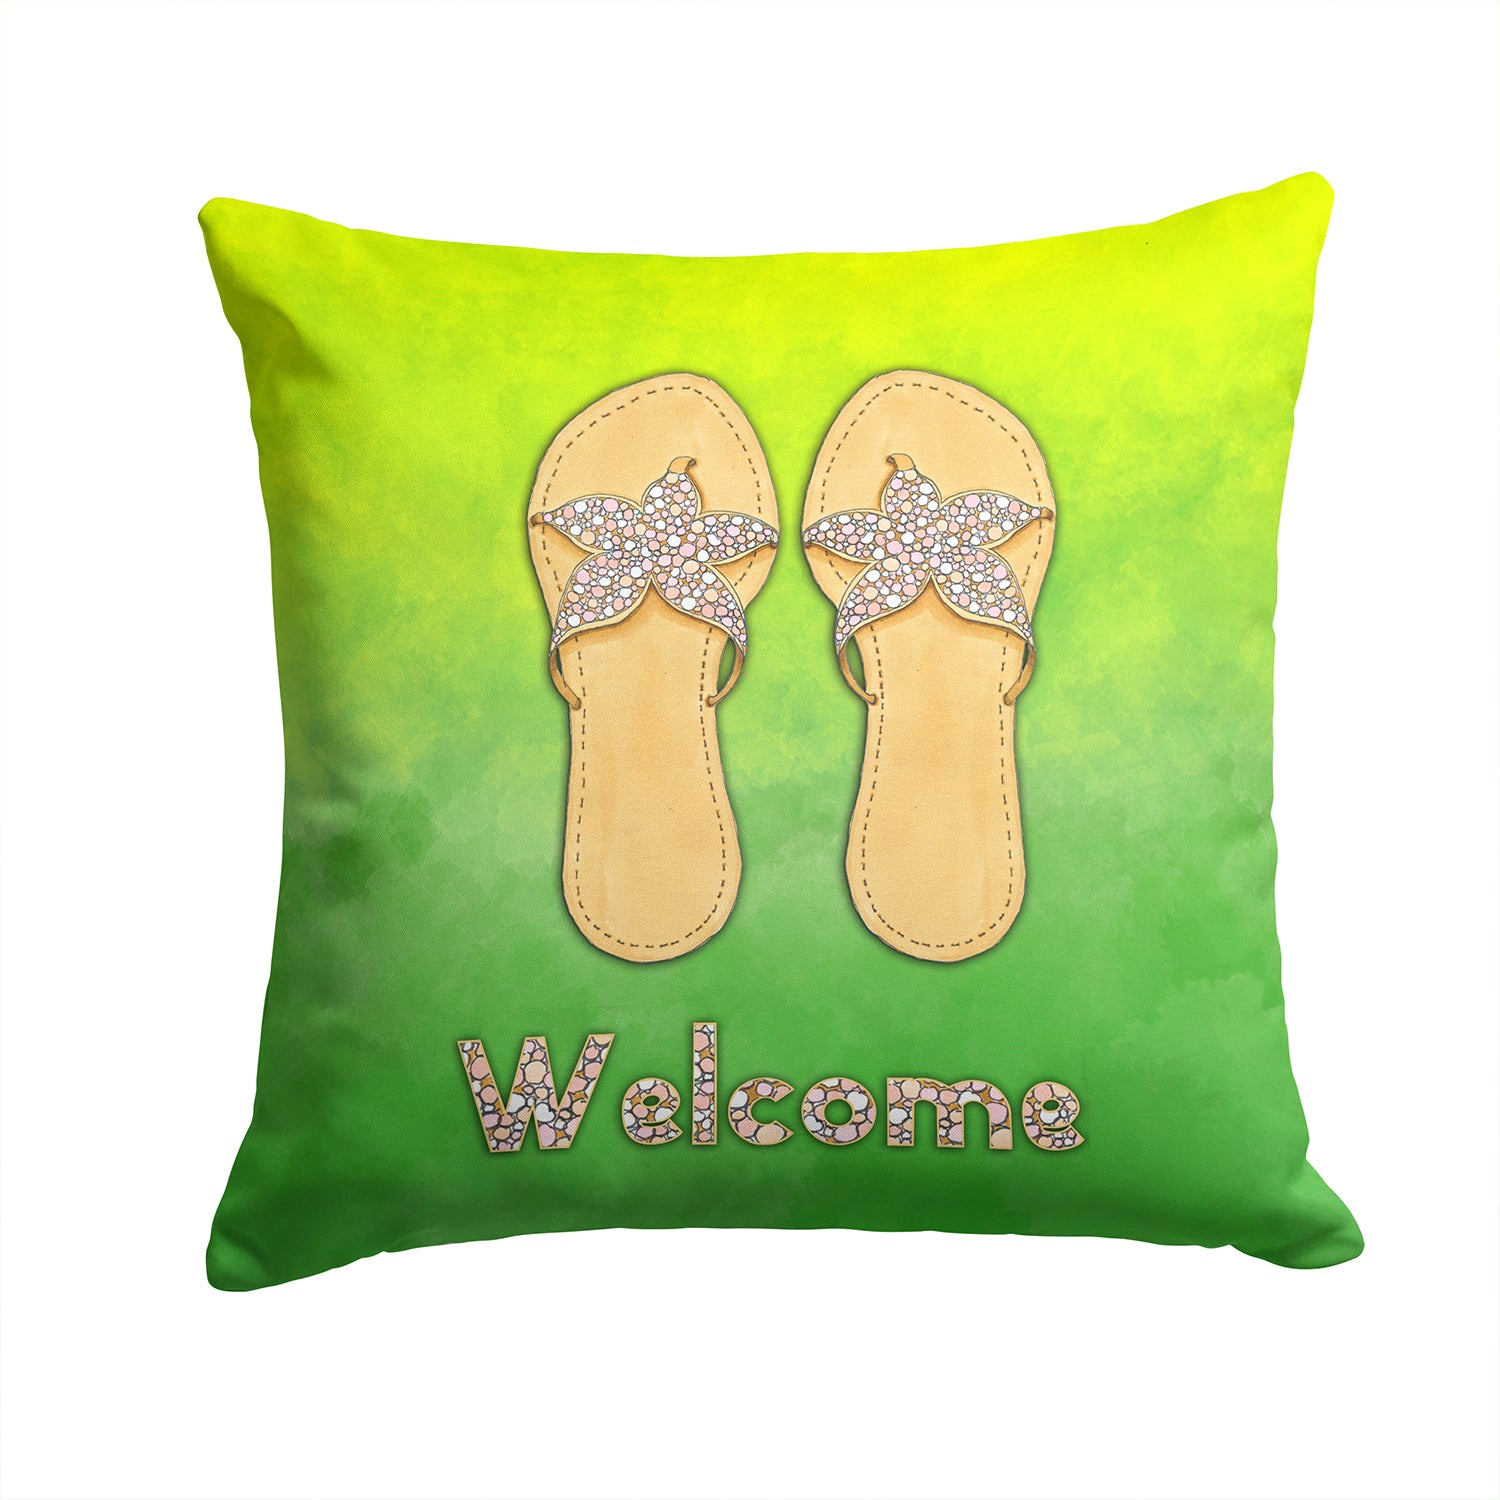 Flip Flops Welcome Fabric Decorative Pillow BB7454PW1414 by Caroline's Treasures